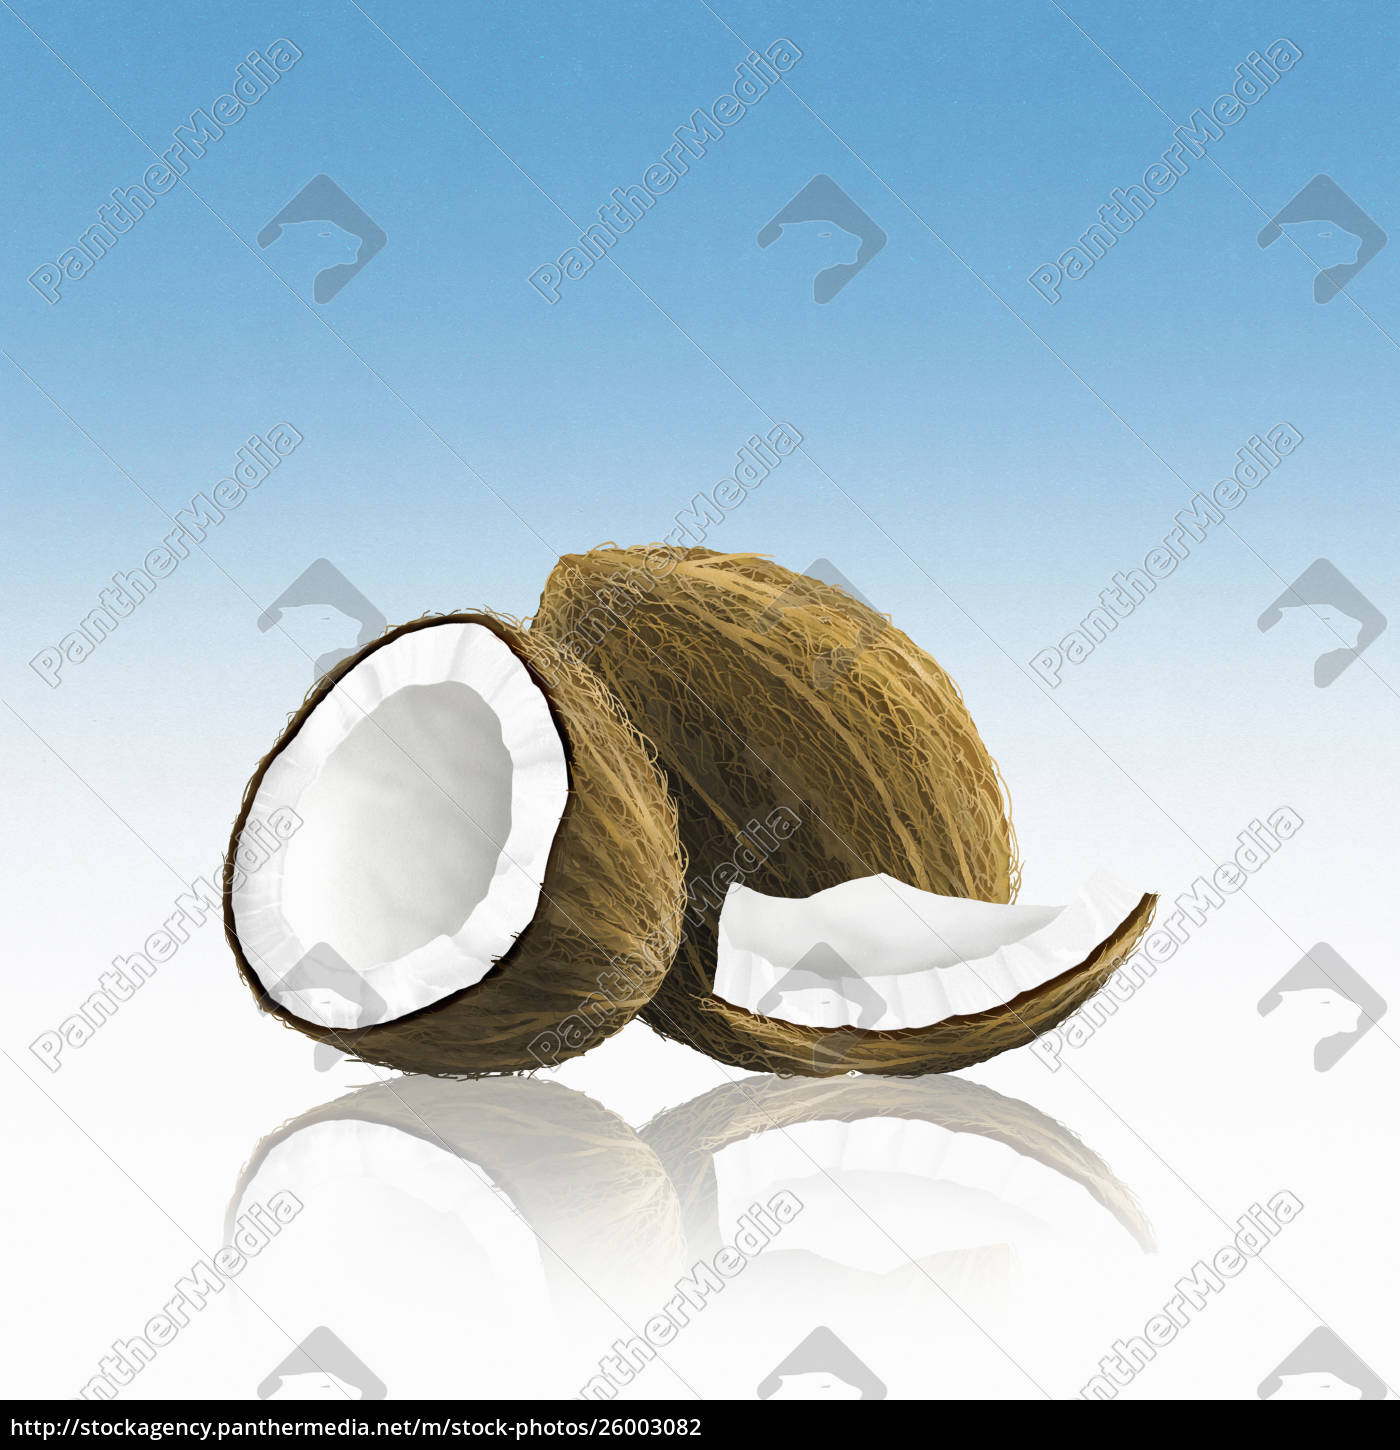 whole, coconut, with, pieces - 26003082